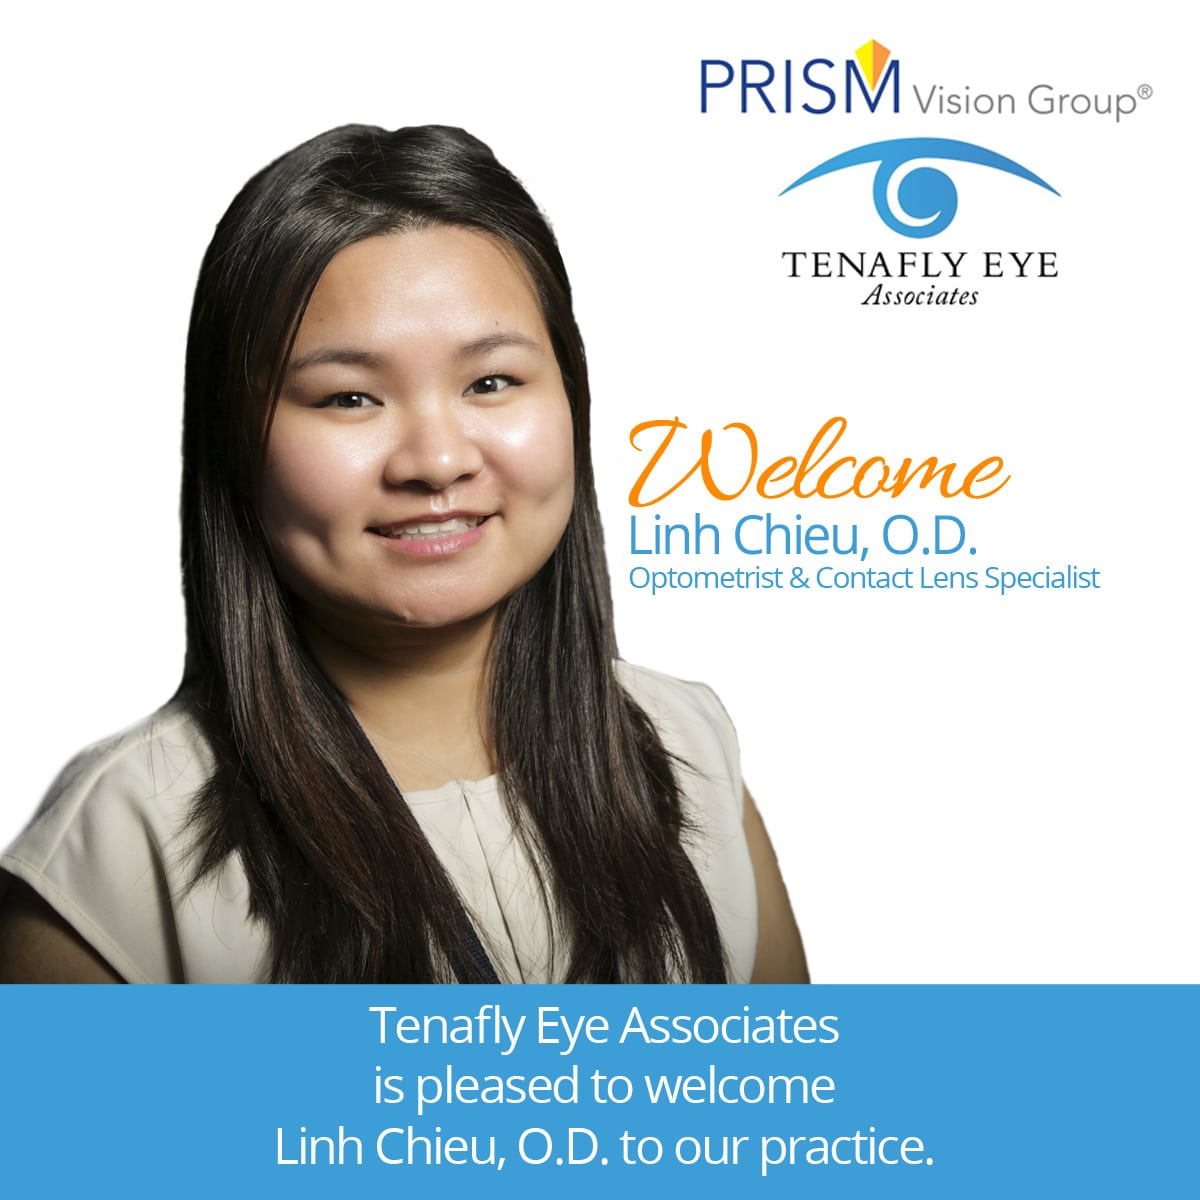 Welcome Dr. Linh Chieu!